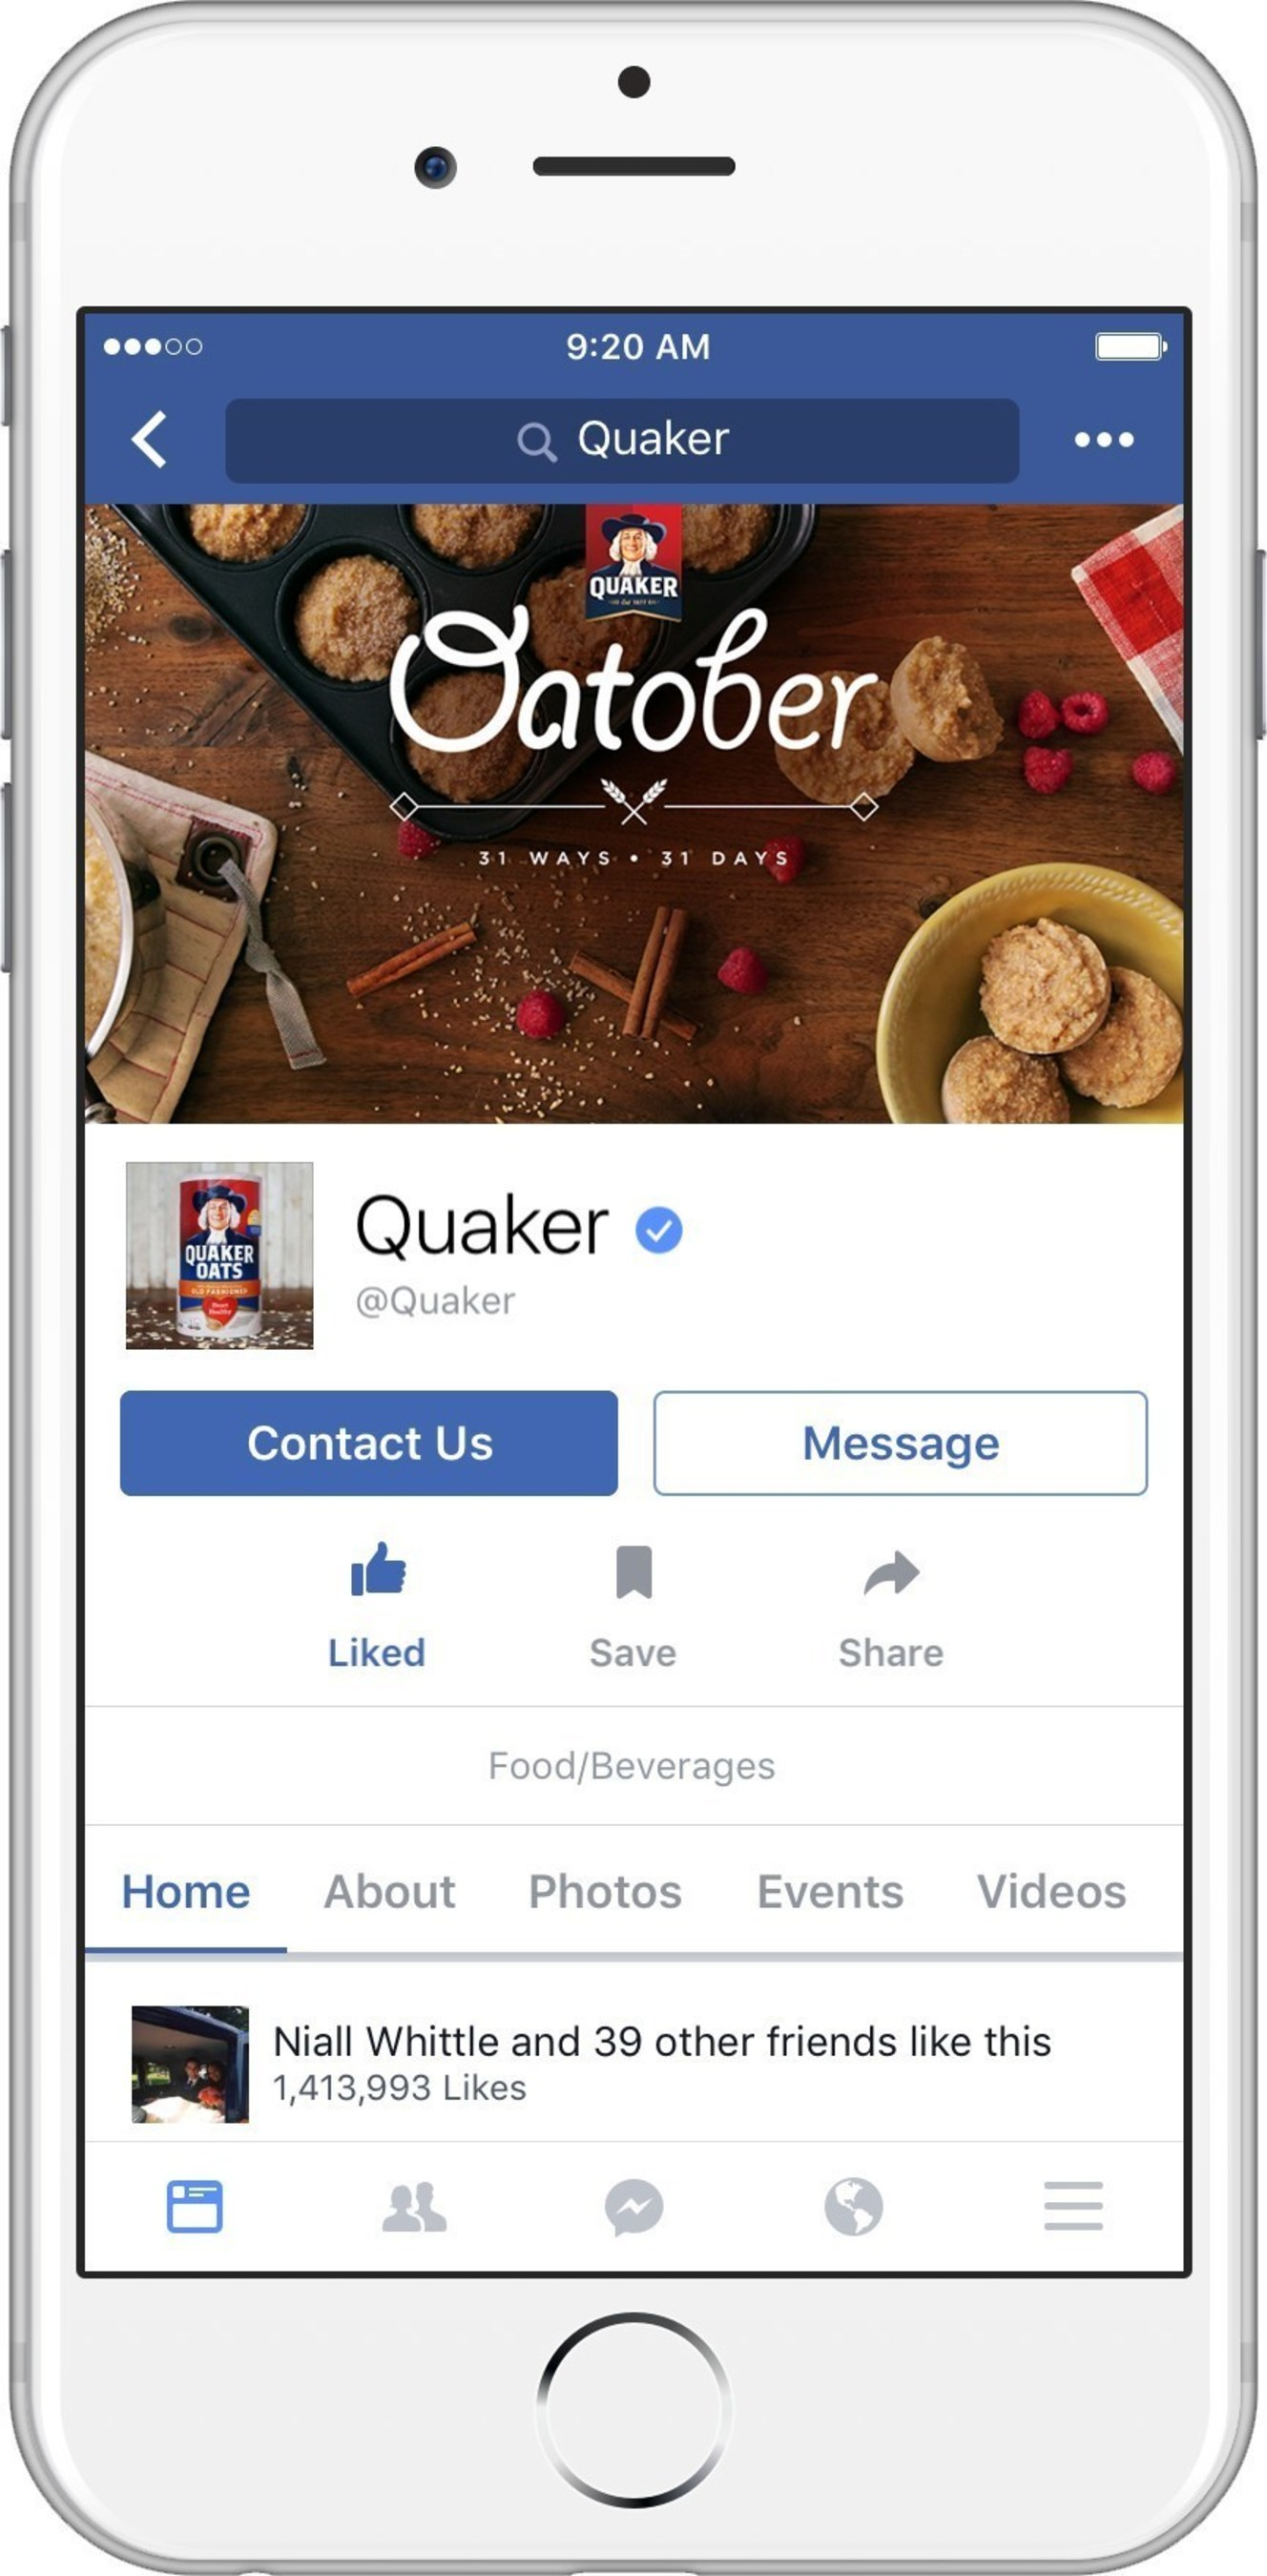 With oatmeal season officially underway, The Quaker Oats Company, a subsidiary of PepsiCo, Inc., is launching a campaign, aptly called 'Oatober,' to celebrate the goodness and versatility of oats.